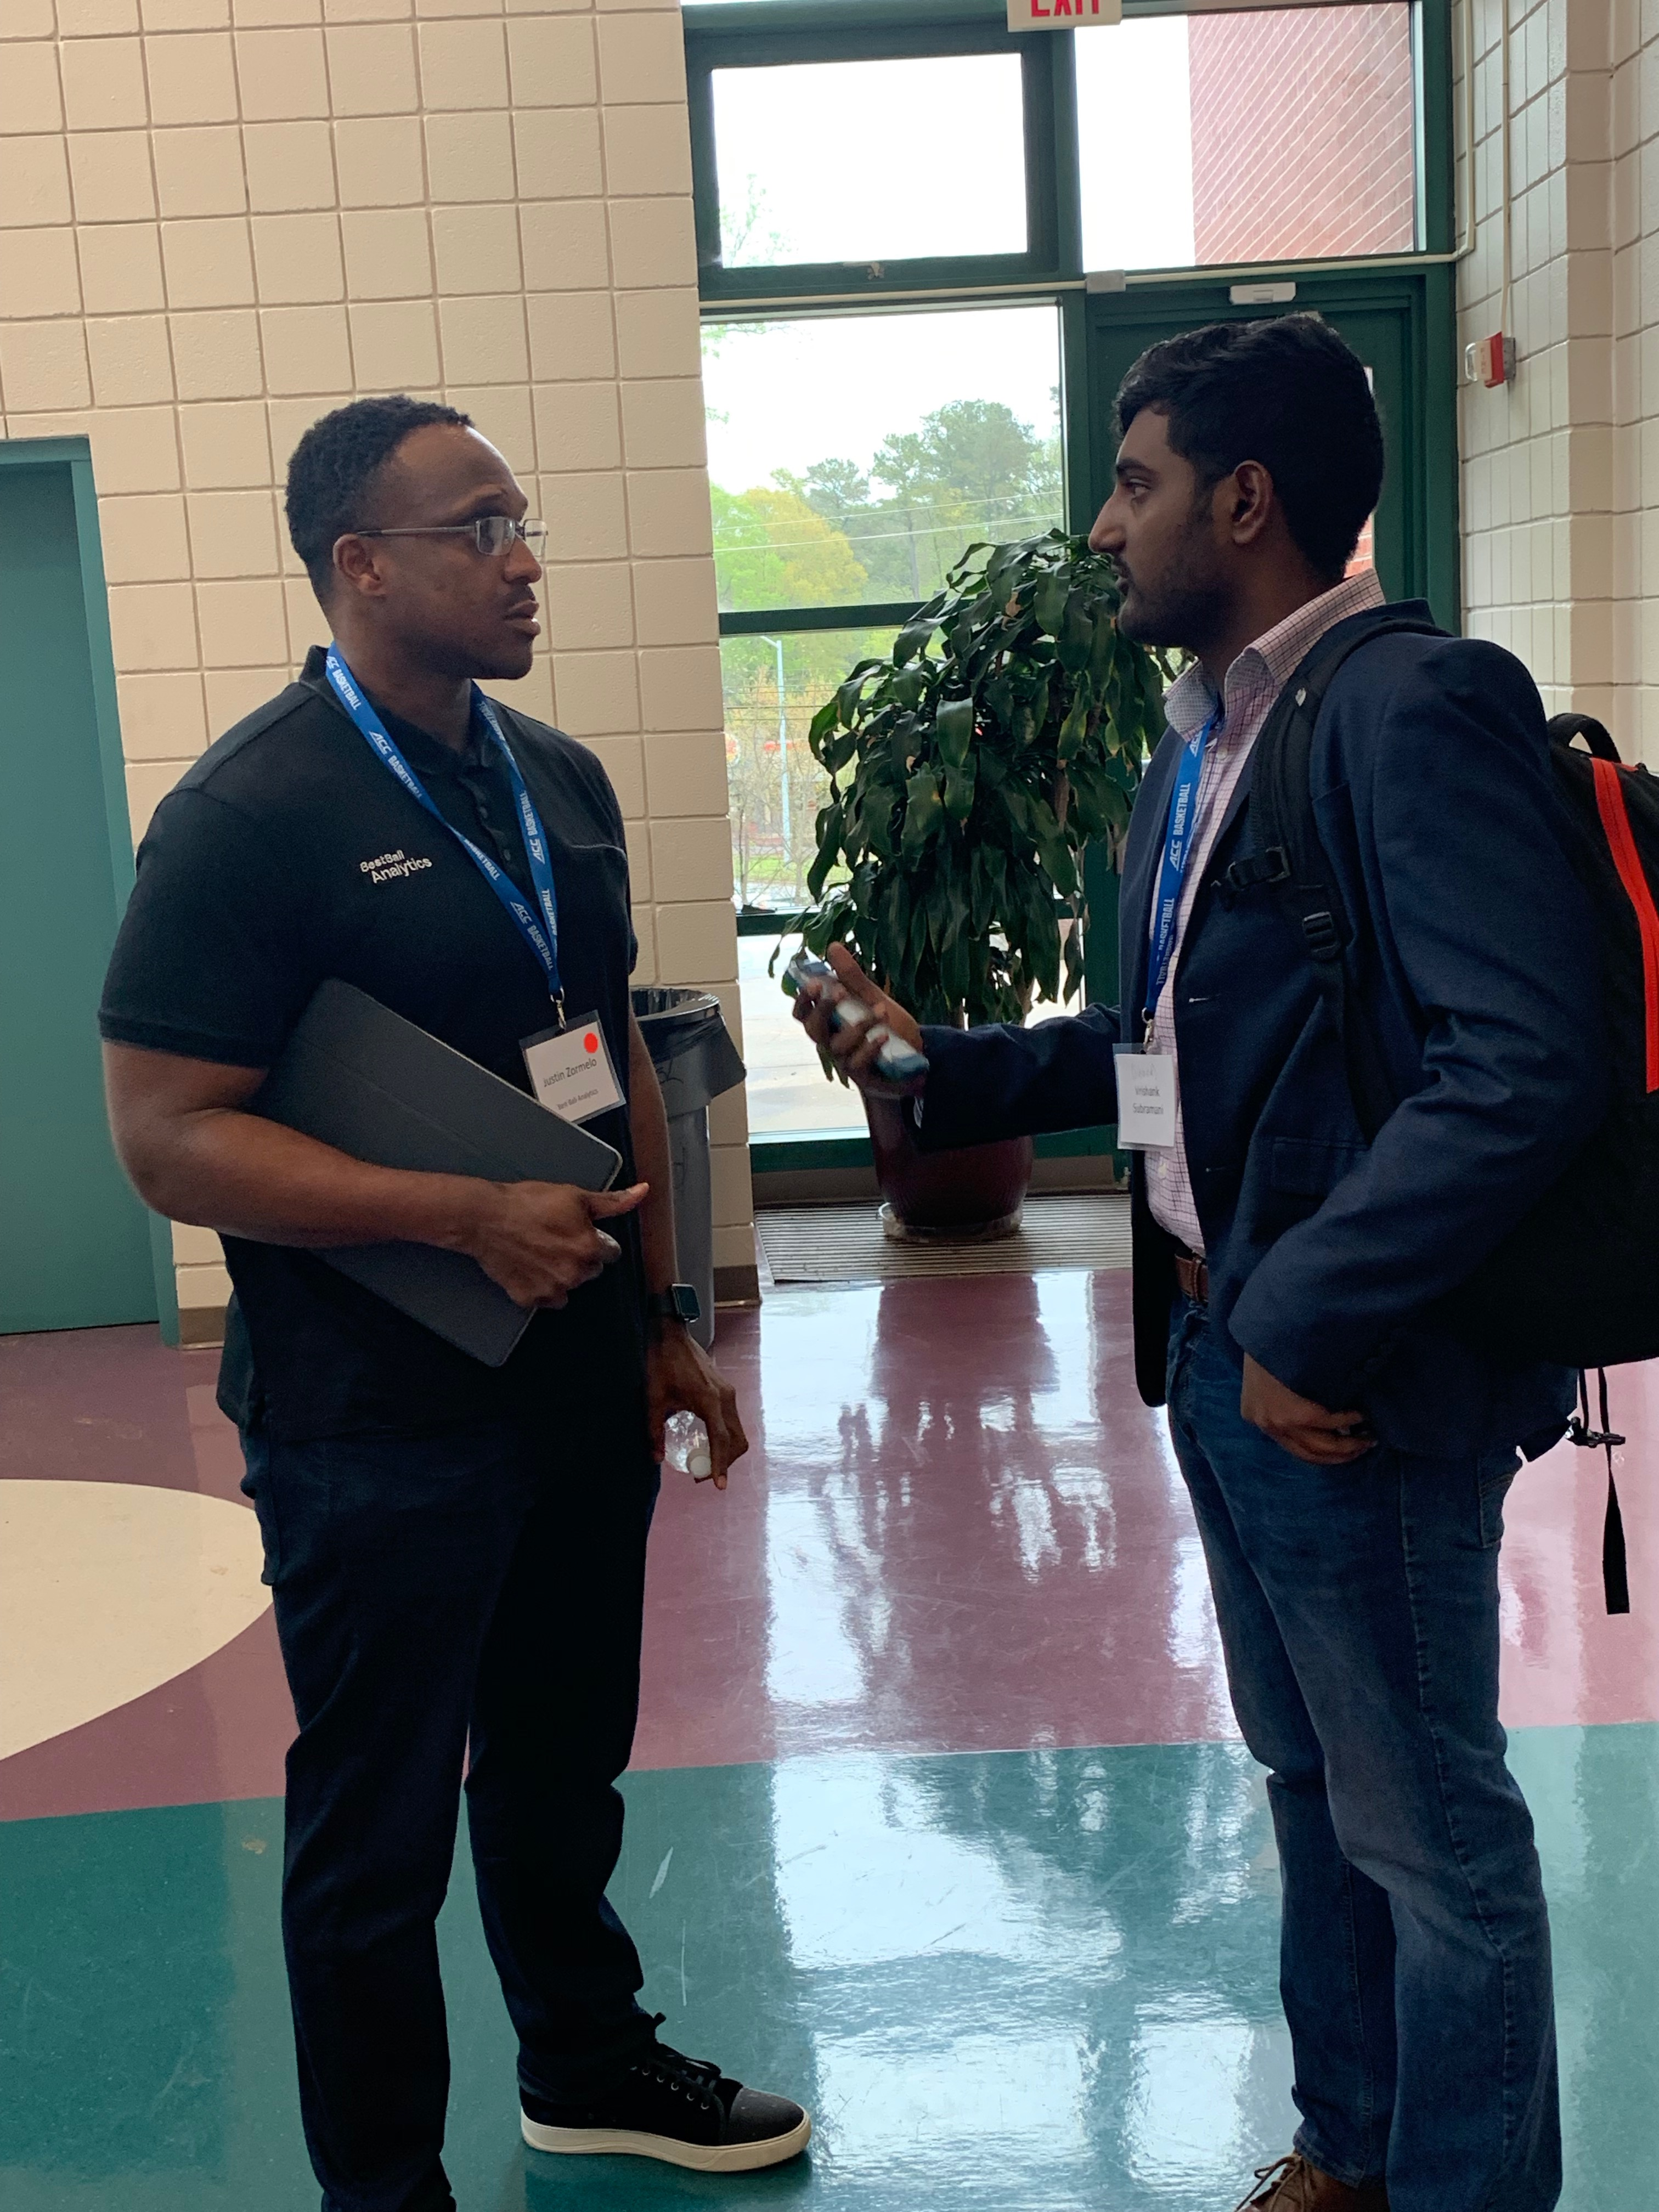 Justin Zormelo chats w/ an attendee